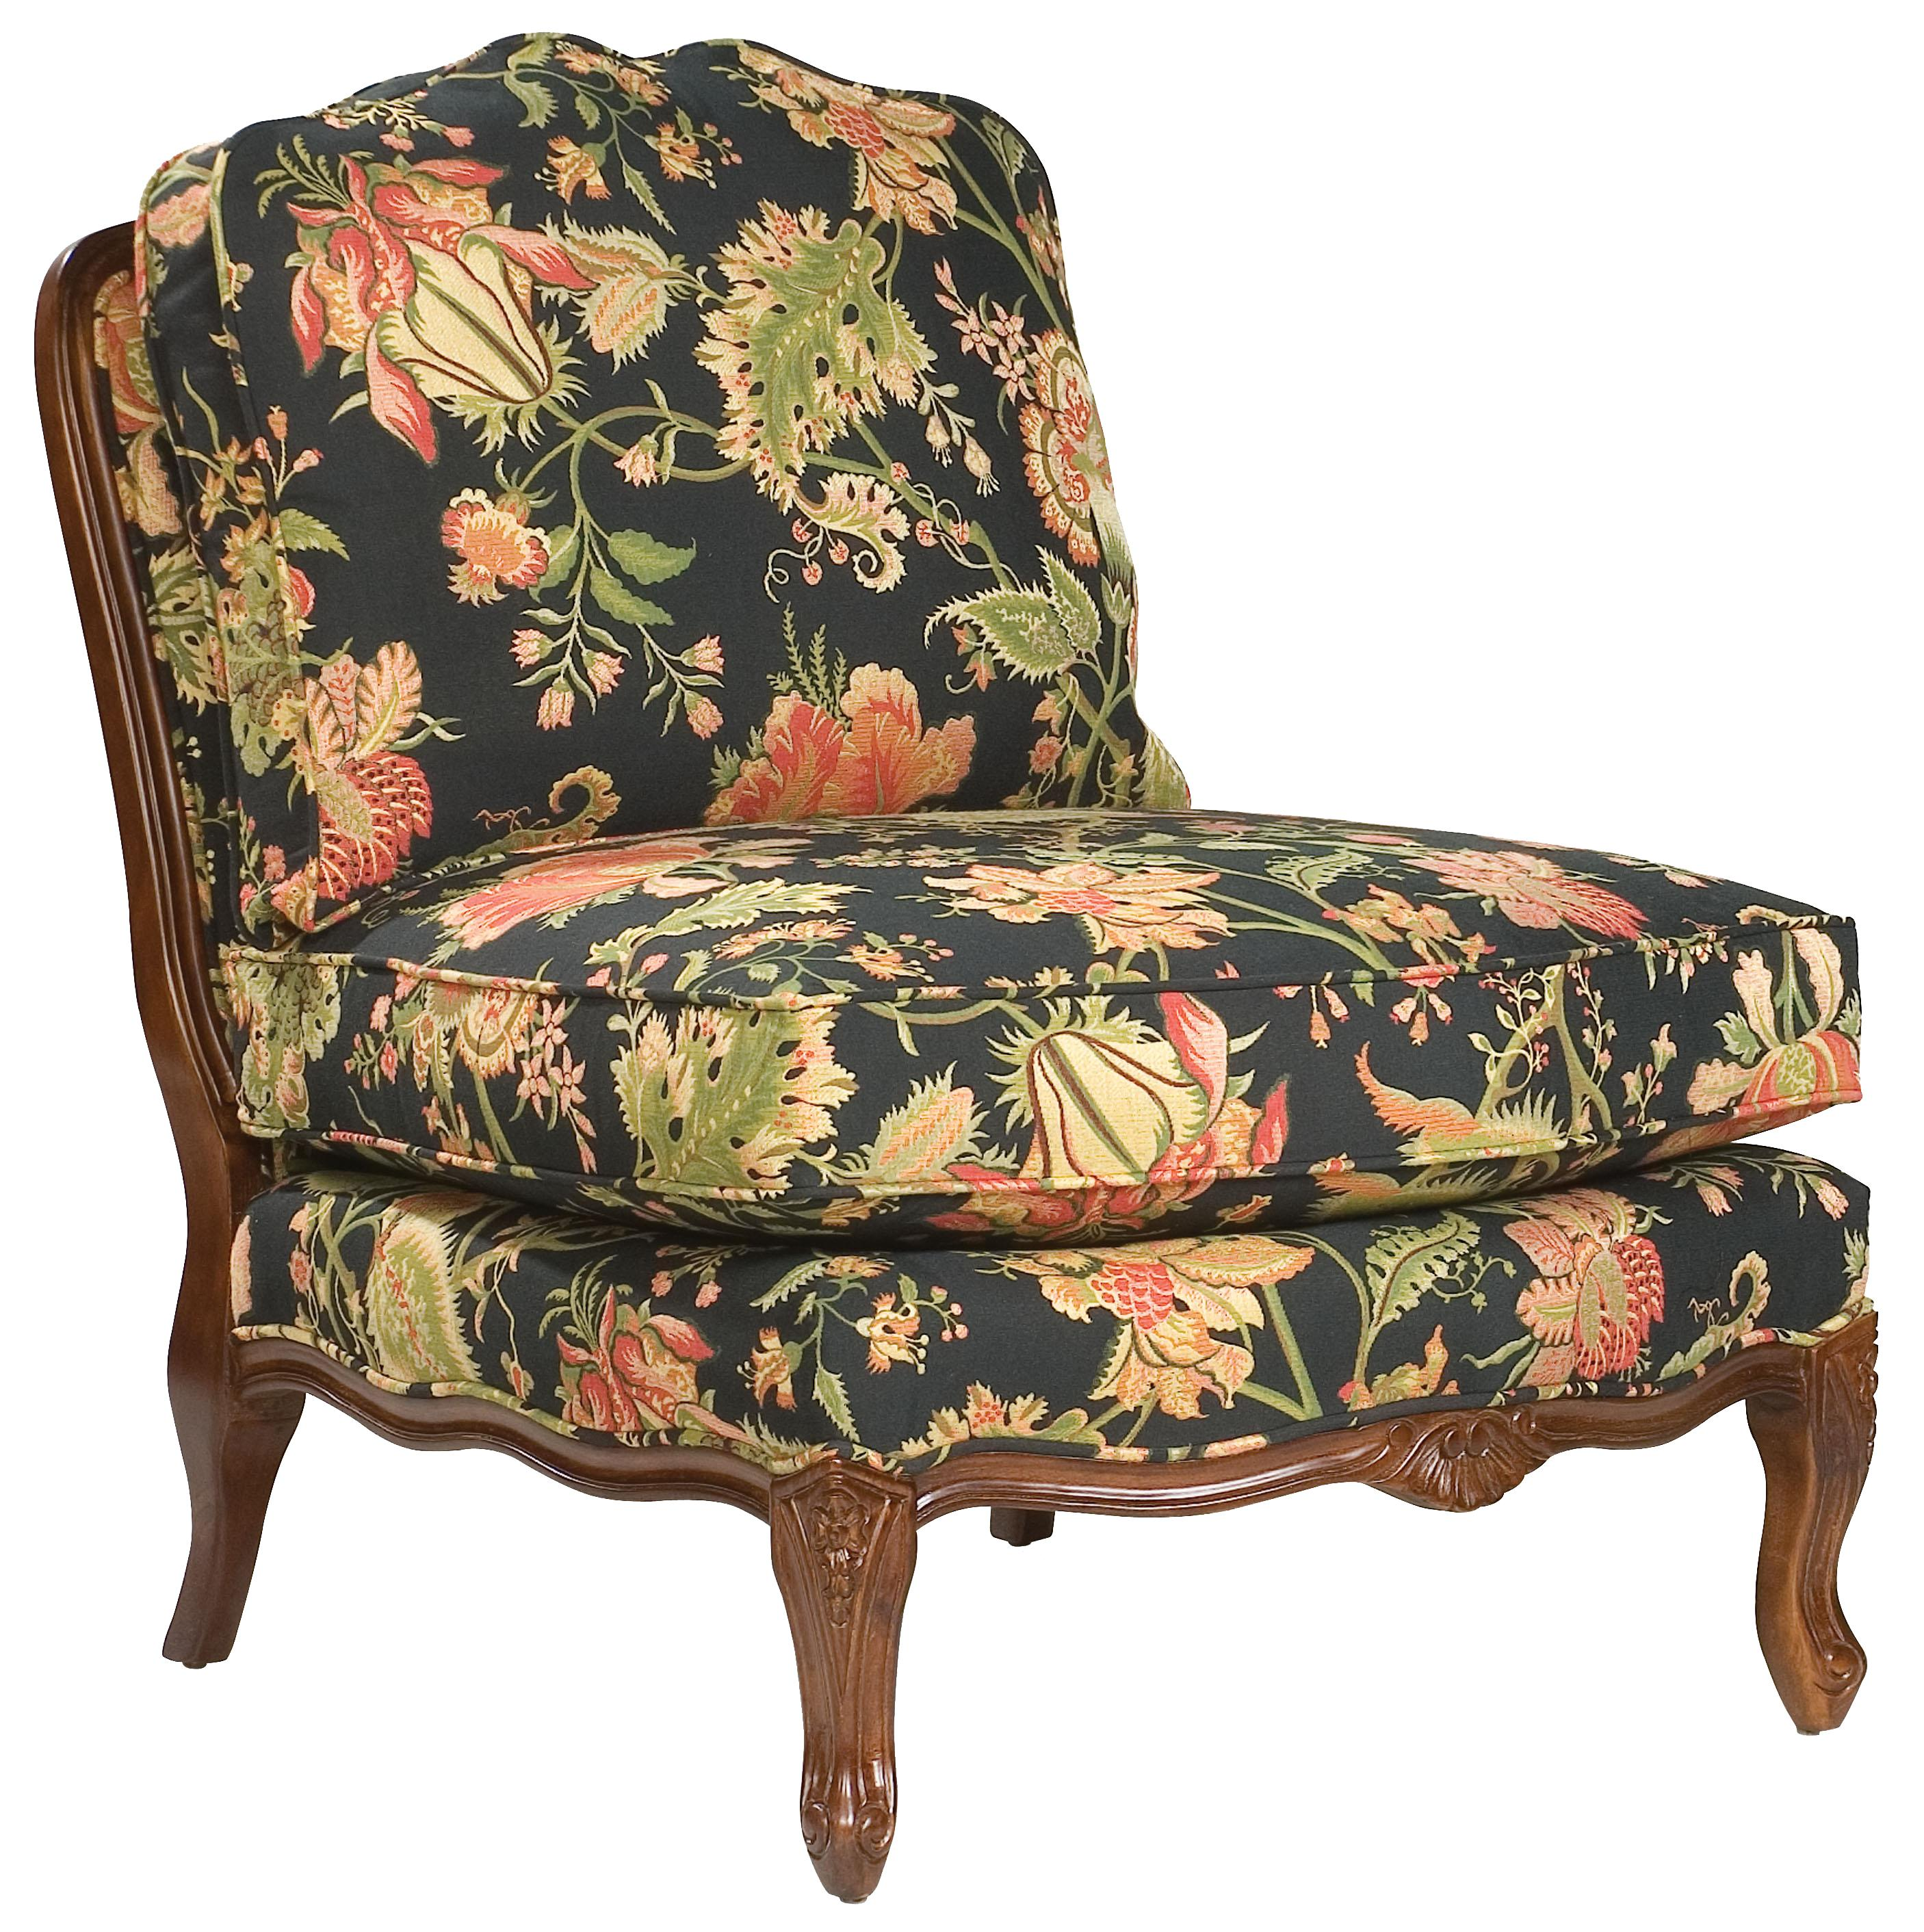 Fairfield Chairs Traditional Armless Lounge Chair - Item Number: 5267-05